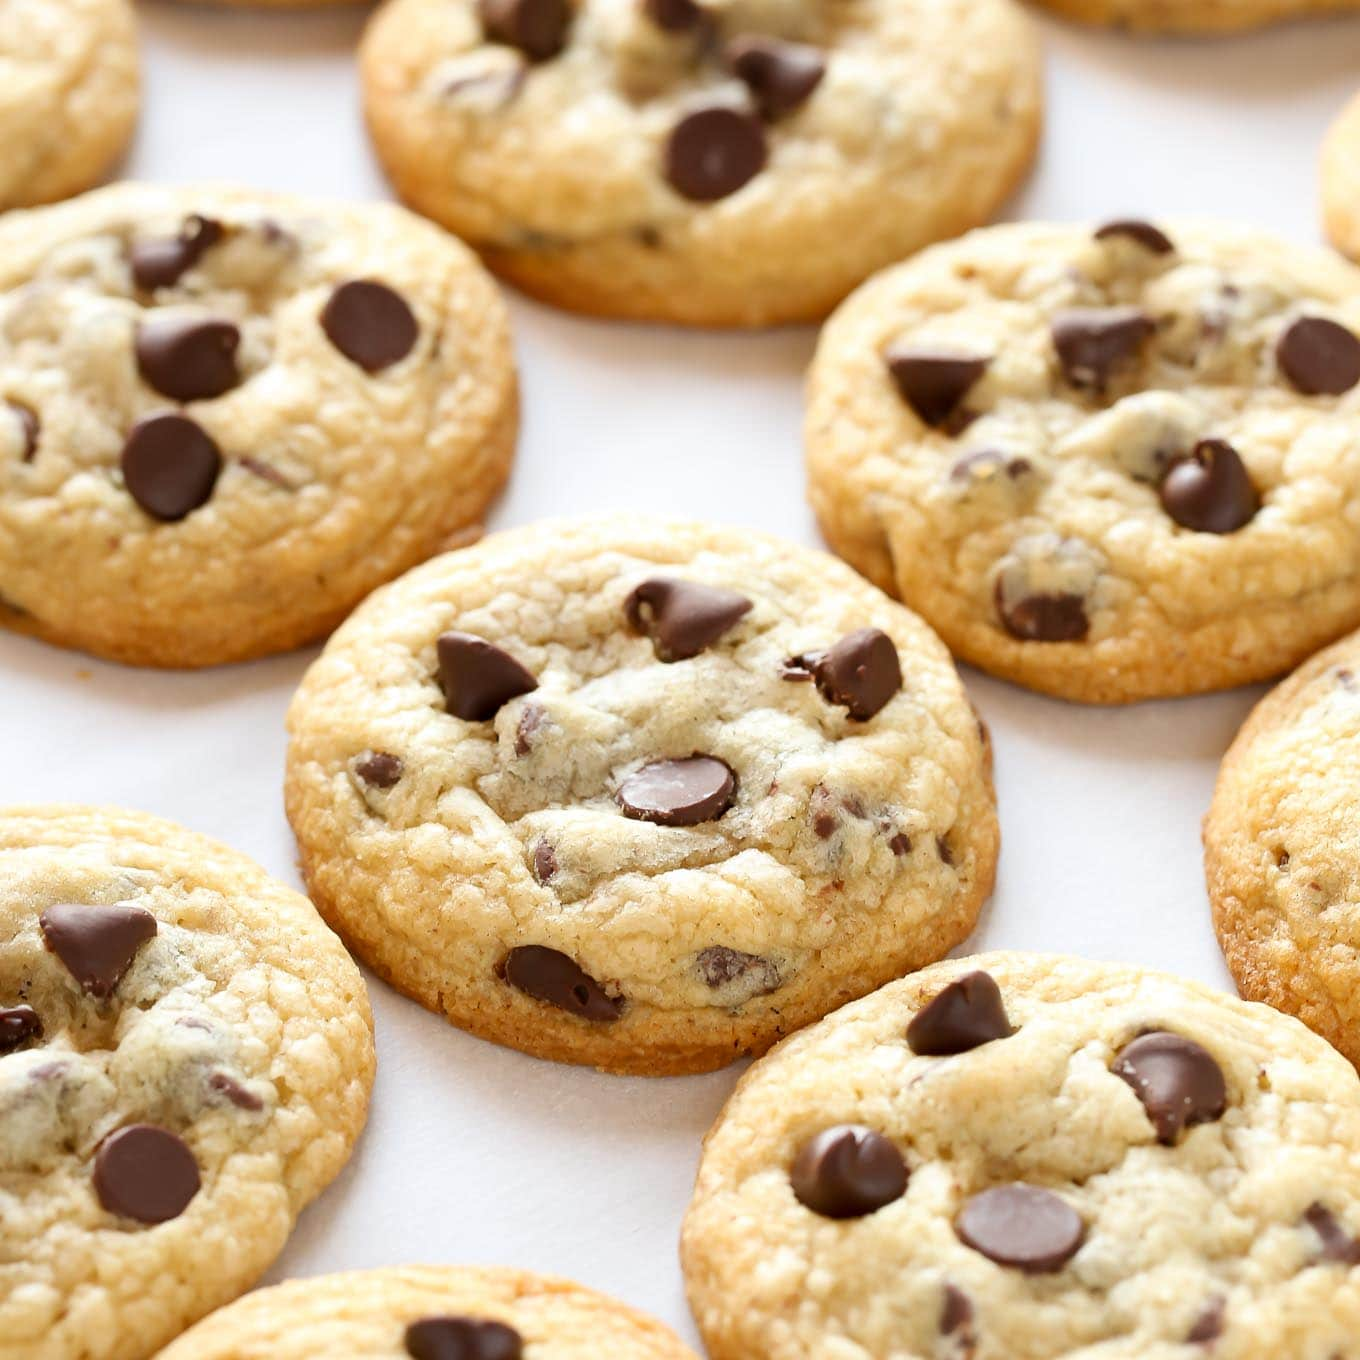 Images Of Chocolate Chip Cookies | Wallpaper sportstle